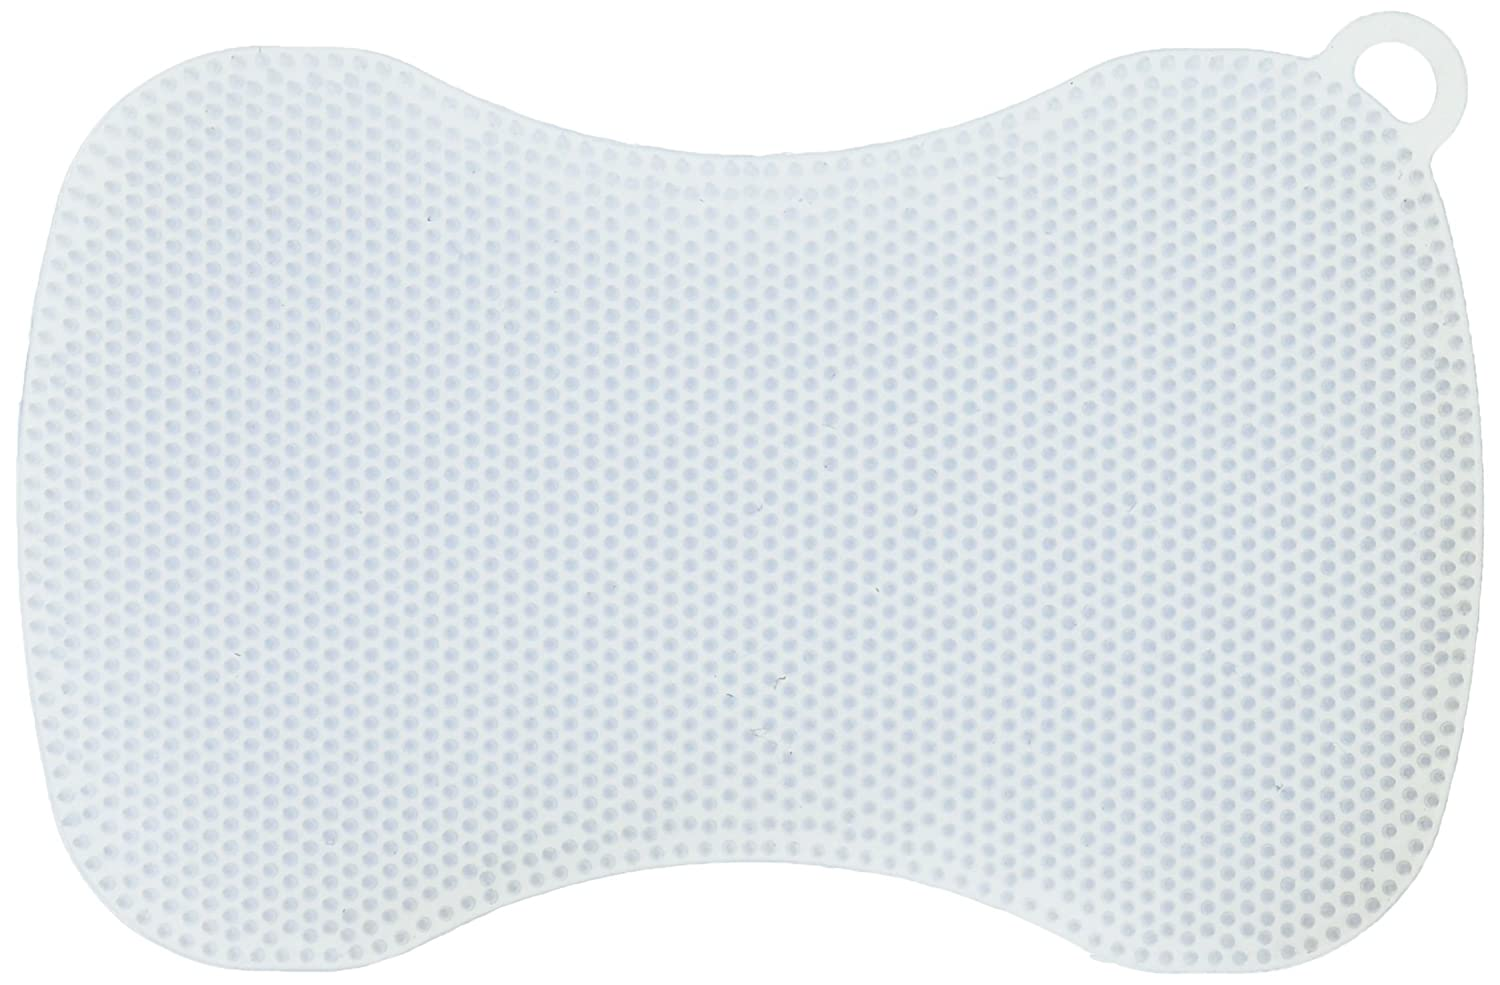 Kuhn Rikon Stay Clean Silicone Scrubber, Ice Blue